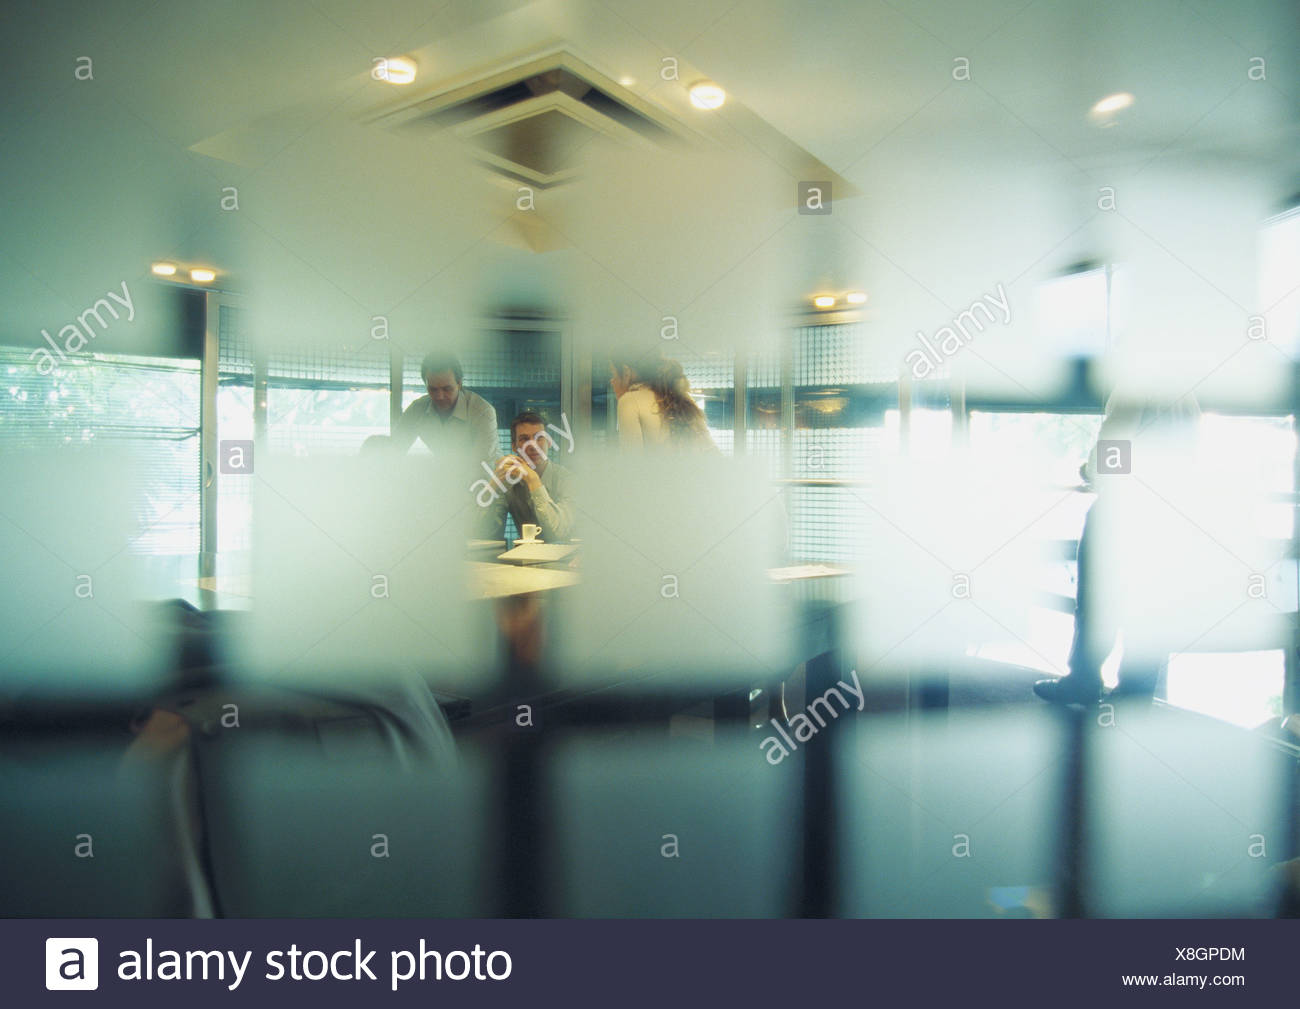 People in conference room, seen through semi-opaque glass wall - Stock Image